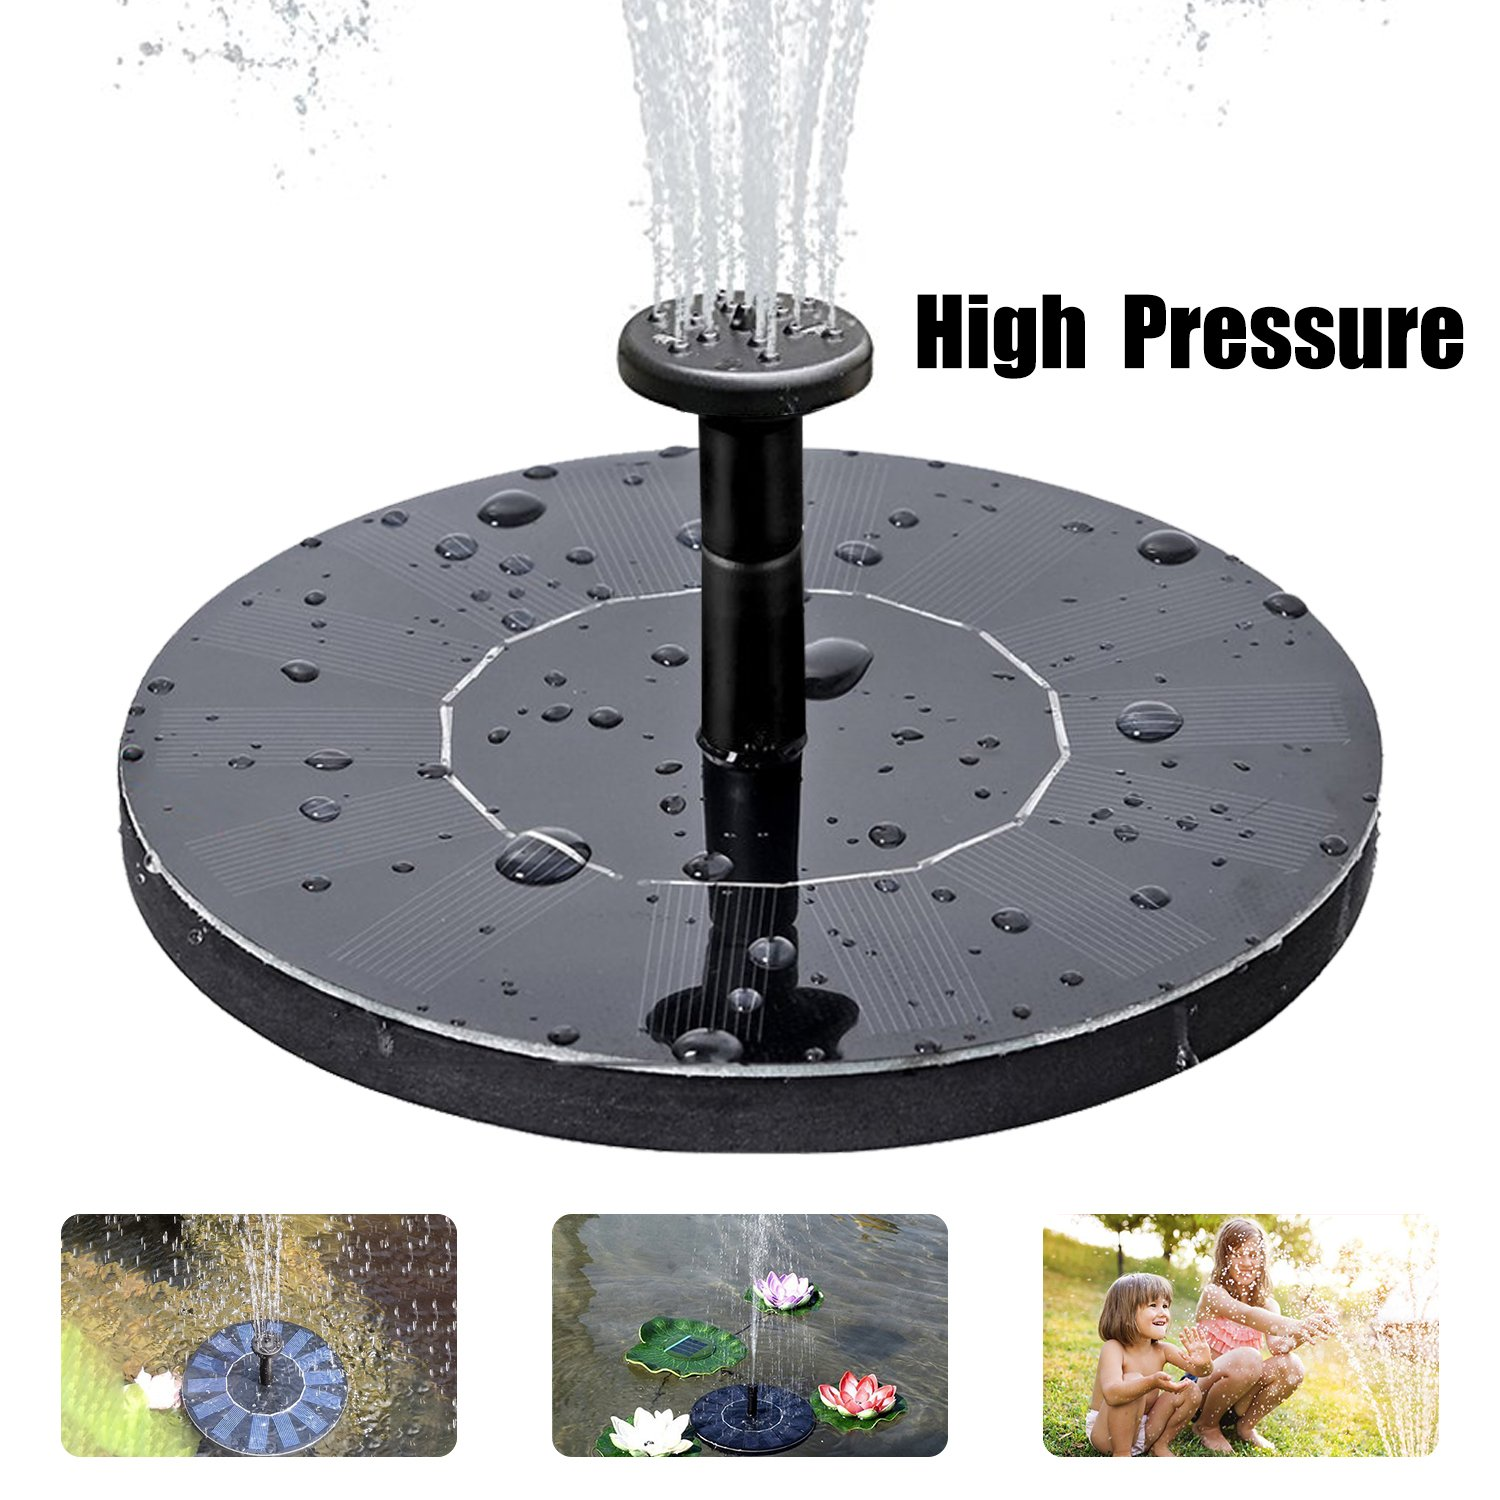 Solar Fountain Pump, Free Standing Solar Birdbath Fountain, 2018 Upgraded 1.5W Solar Powered Fountain Pumps Submersible Outdoor, for Bird Bath, Small Pond, Swimming Pool, Garden, Patio and Lawn by CYNOVA